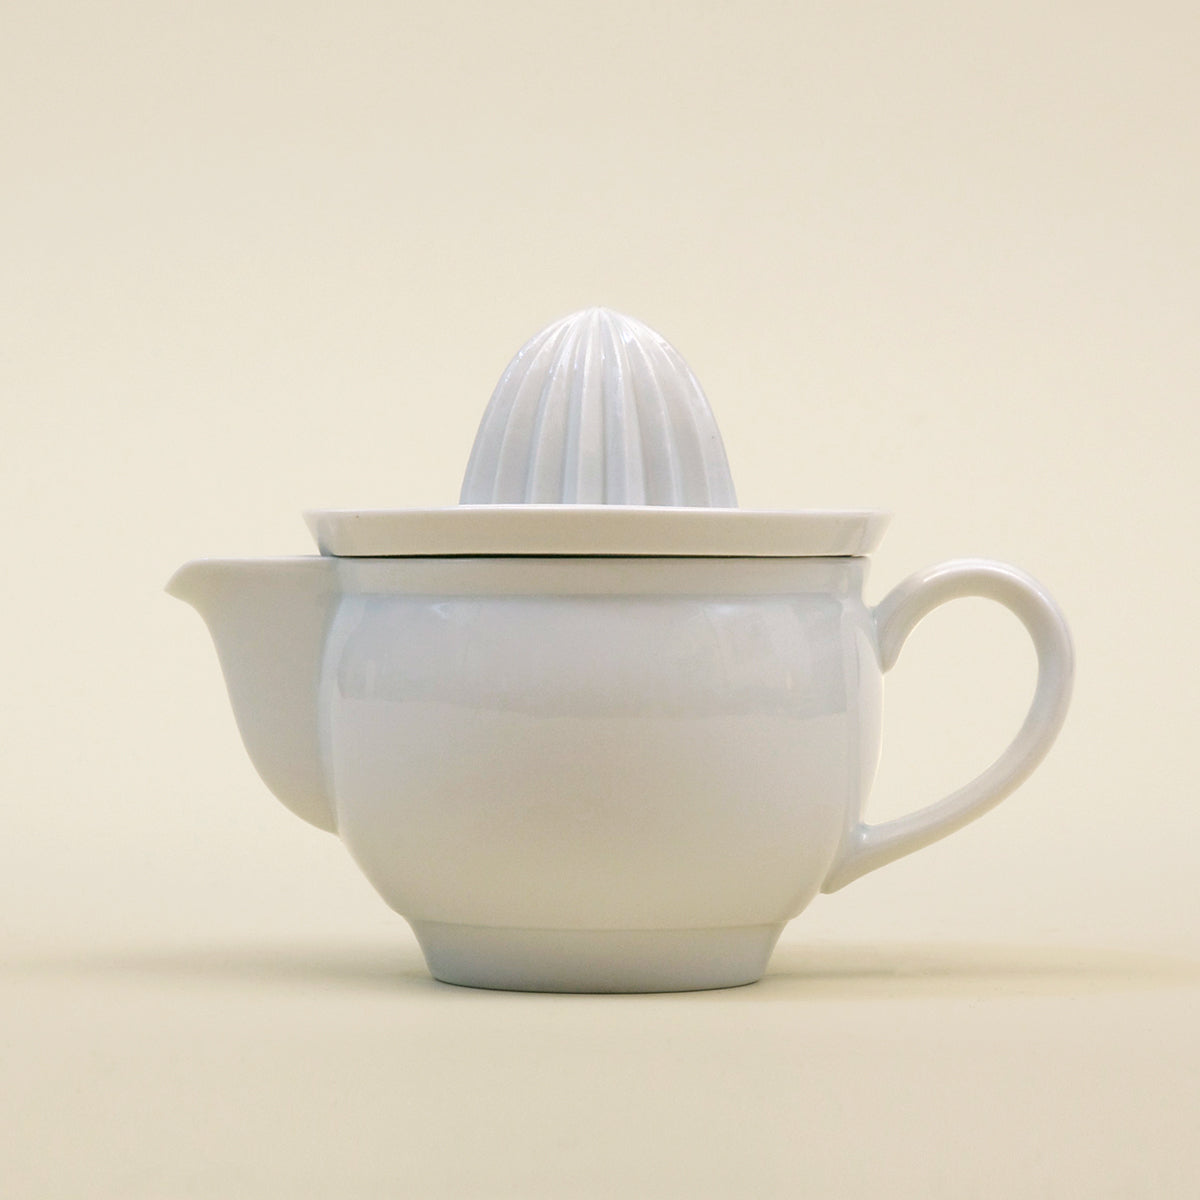 Porcelain Juicer